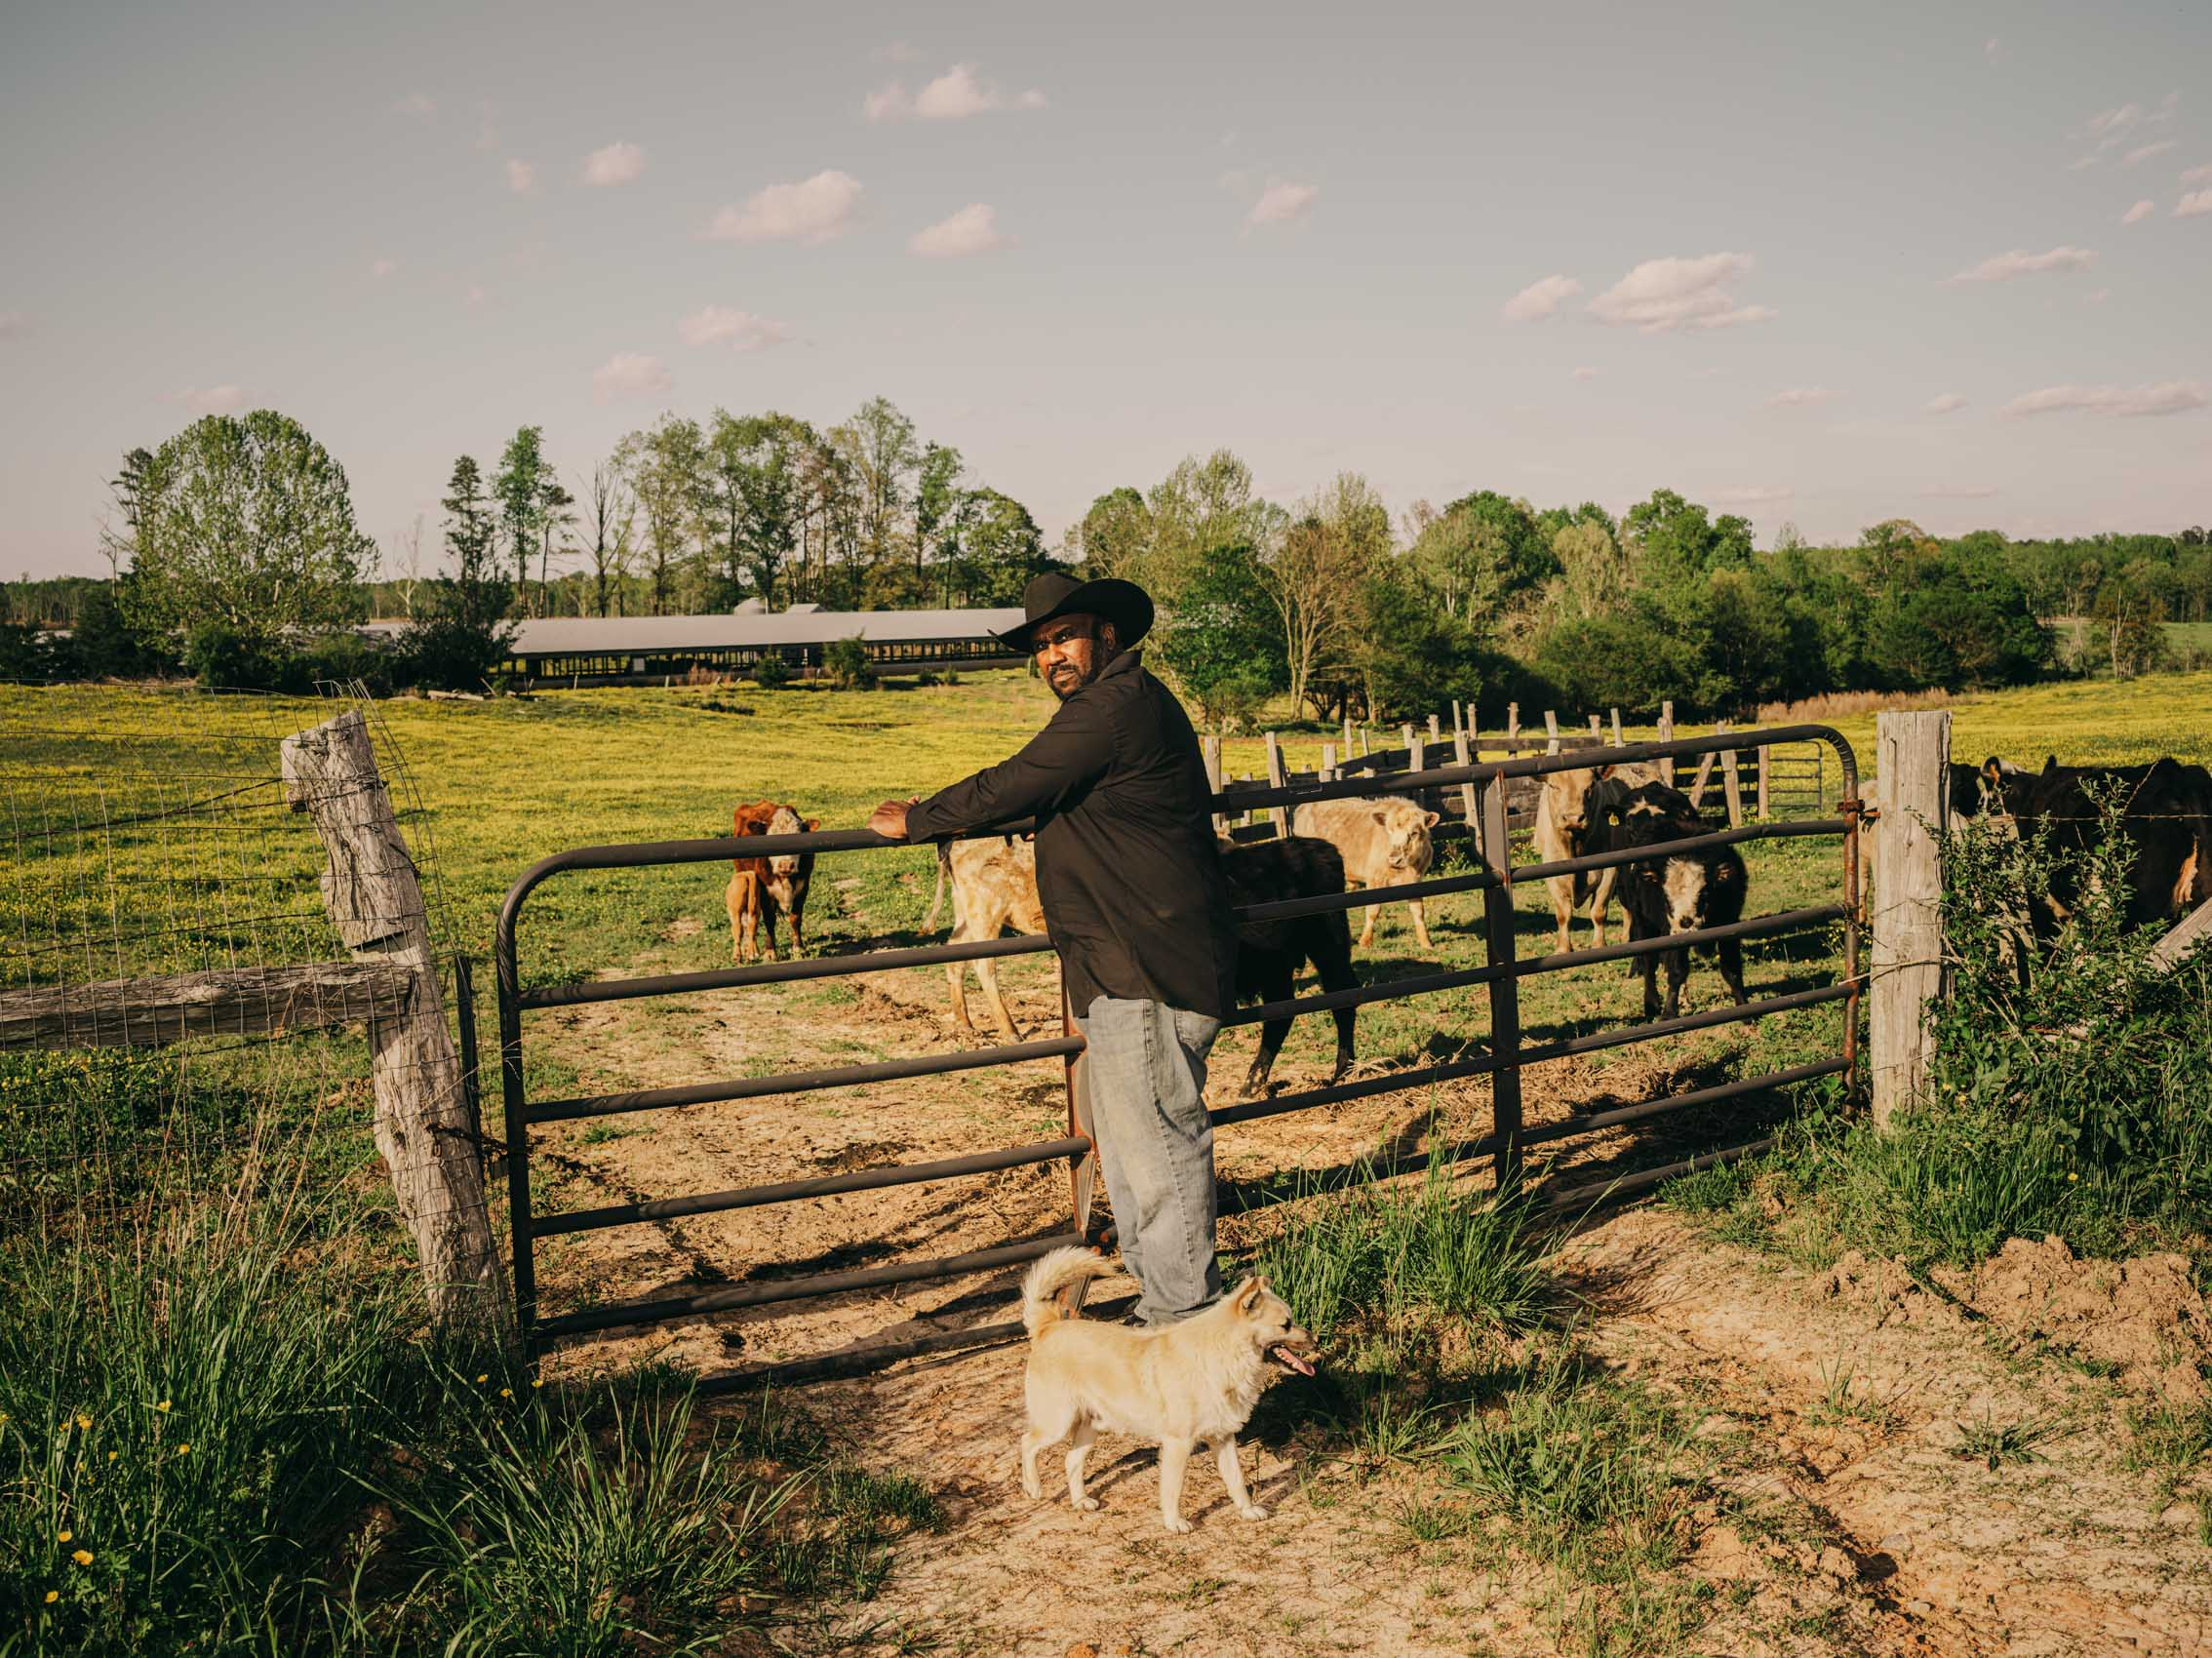 John Boyd Jr. at gate with cows on his farm in virginia